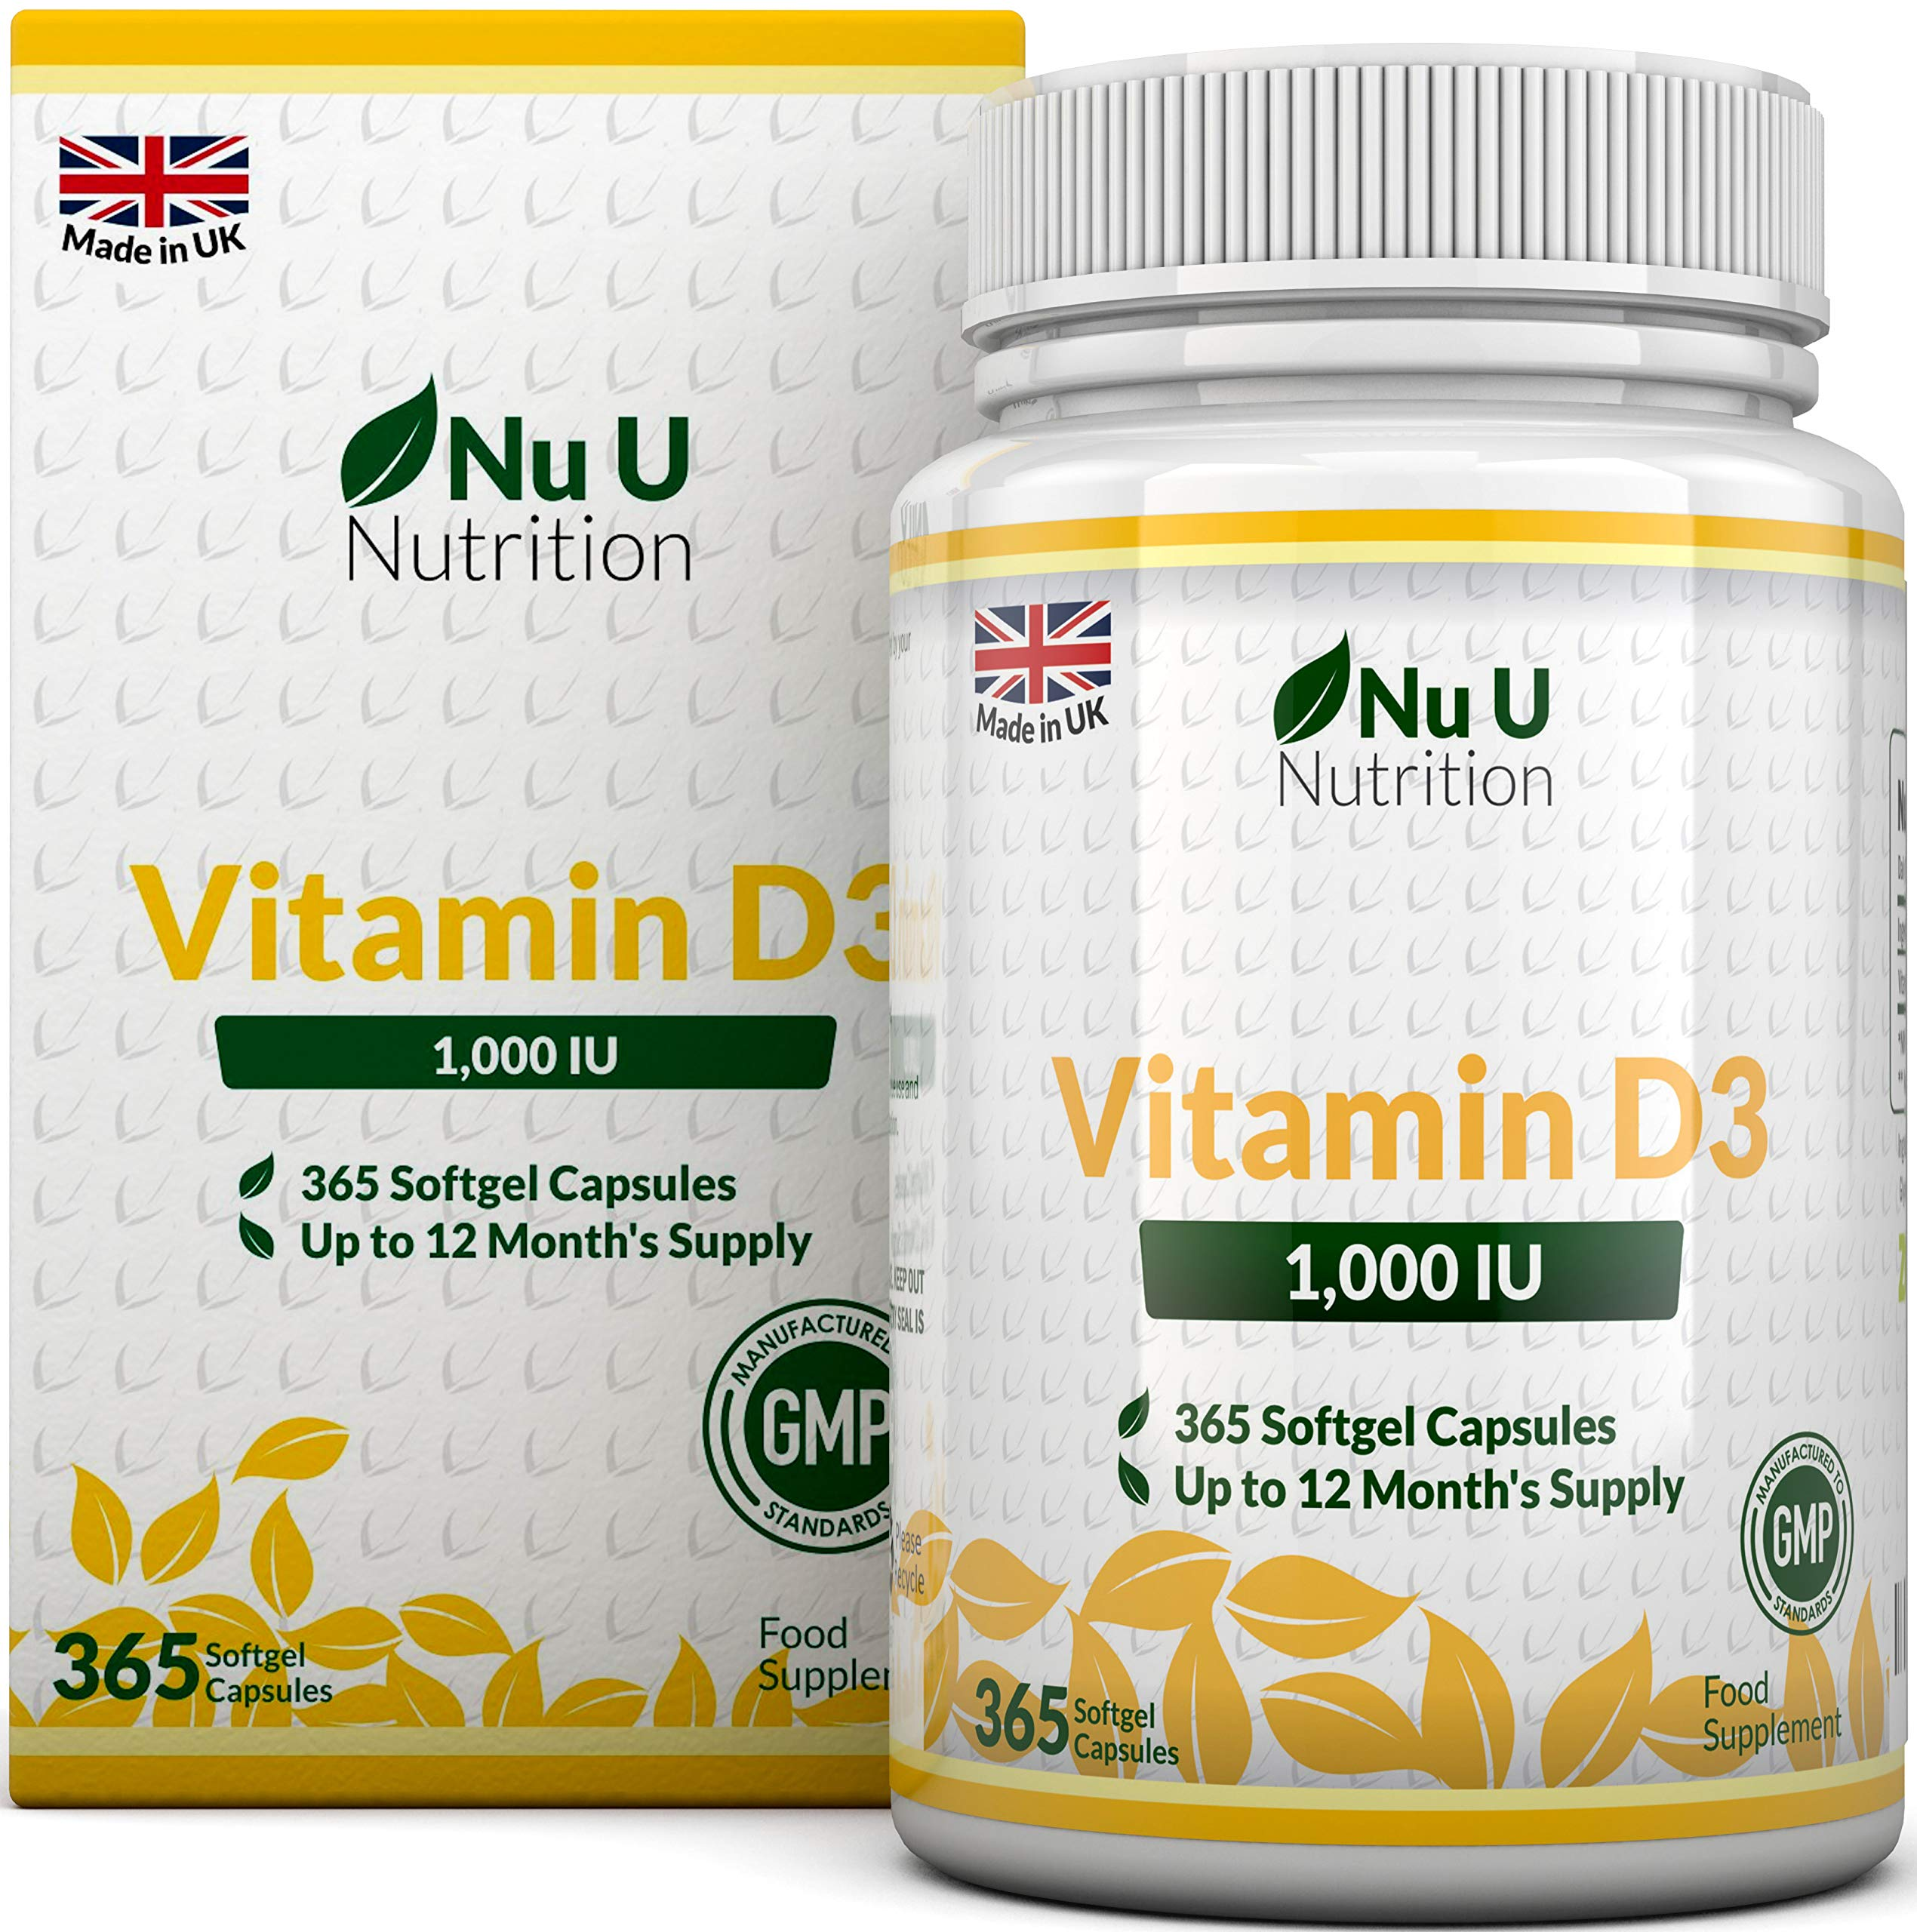 Vitamin D3 365 Softgels (Full Year Supply) | 1000IU Vitamin D Supplement | High Absorption Cholecalciferol Vitamin D (Vitamin D3 softgels Easier to Swallow Than Vitamin D Tablets) by Nu U Nutrition product image